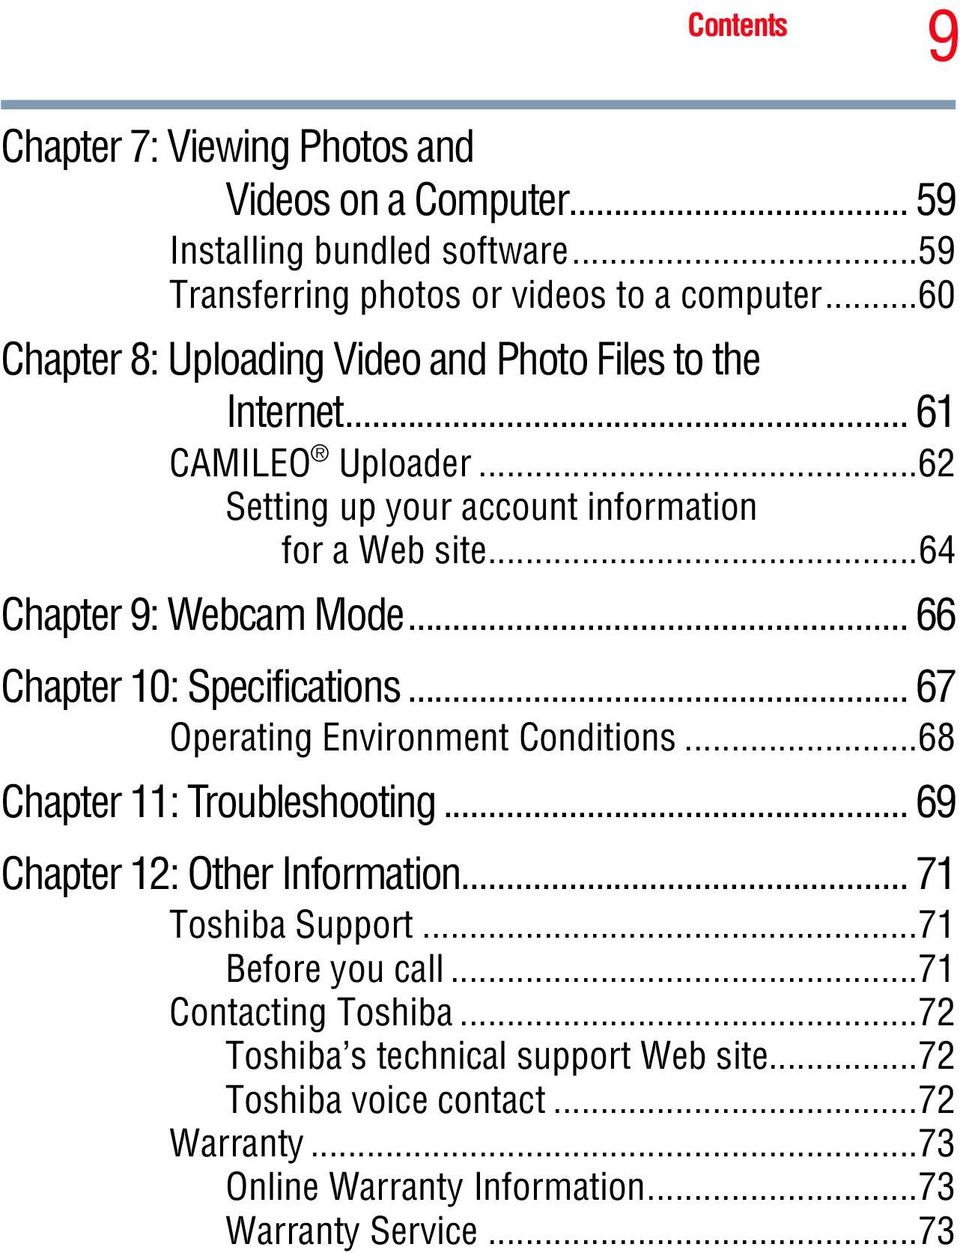 ..64 Chapter 9: Webcam Mode... 66 Chapter 10: Specifications... 67 Operating Environment Conditions...68 Chapter 11: Troubleshooting... 69 Chapter 12: Other Information.